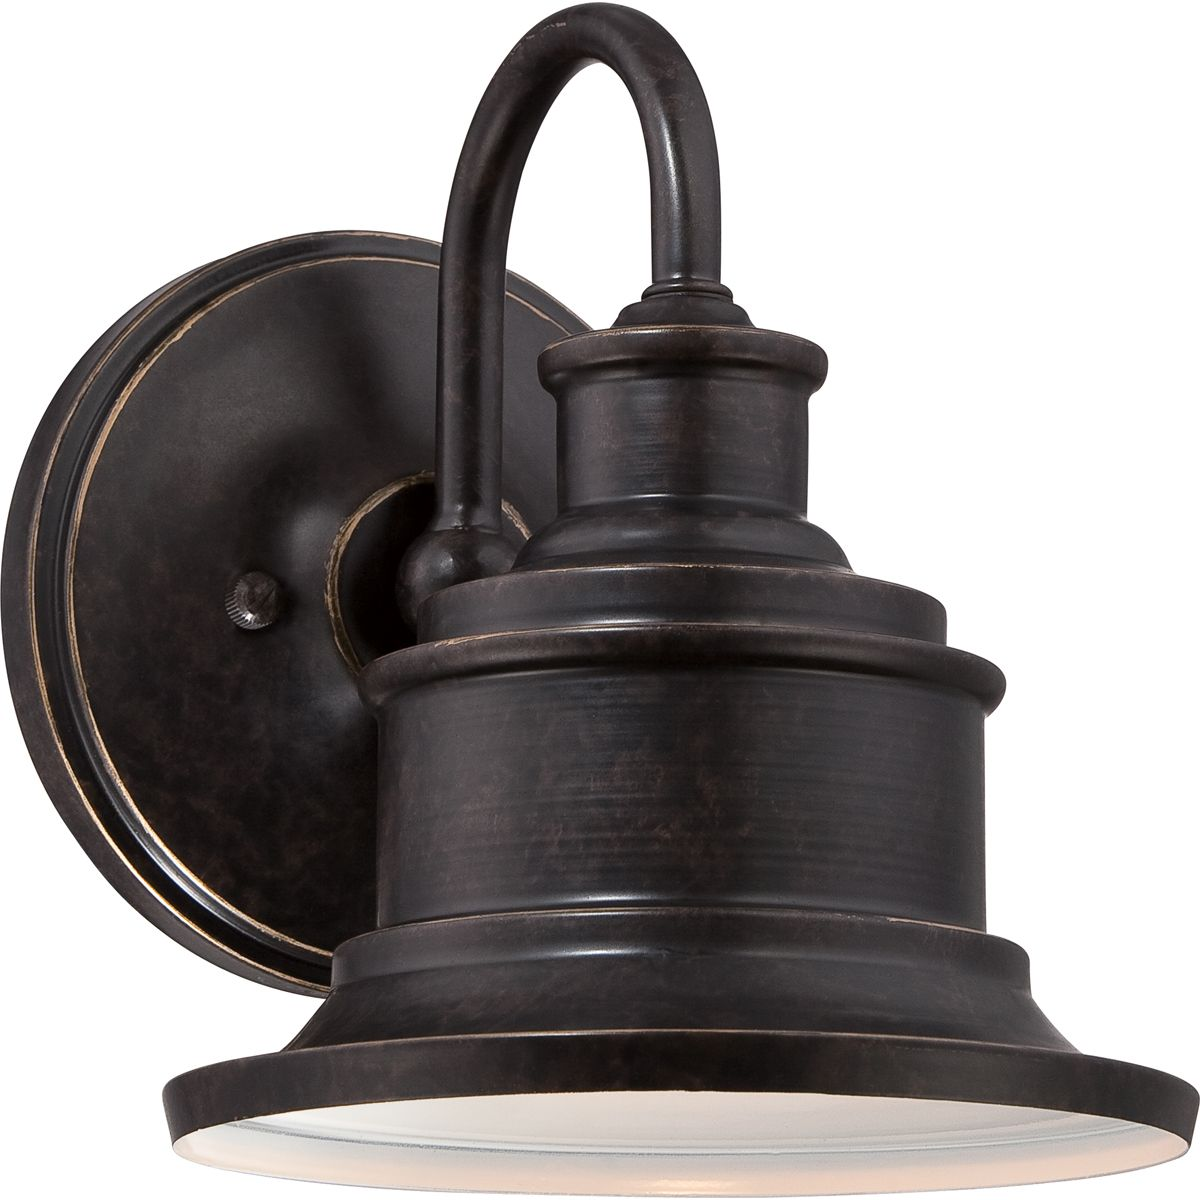 Quoizel Lighting Sfd8407ib Seaford Outdoor Wall Sconce In Imperial Bronze Finish Outdoor Wall Sconce Outdoor Wall Lantern Quoizel